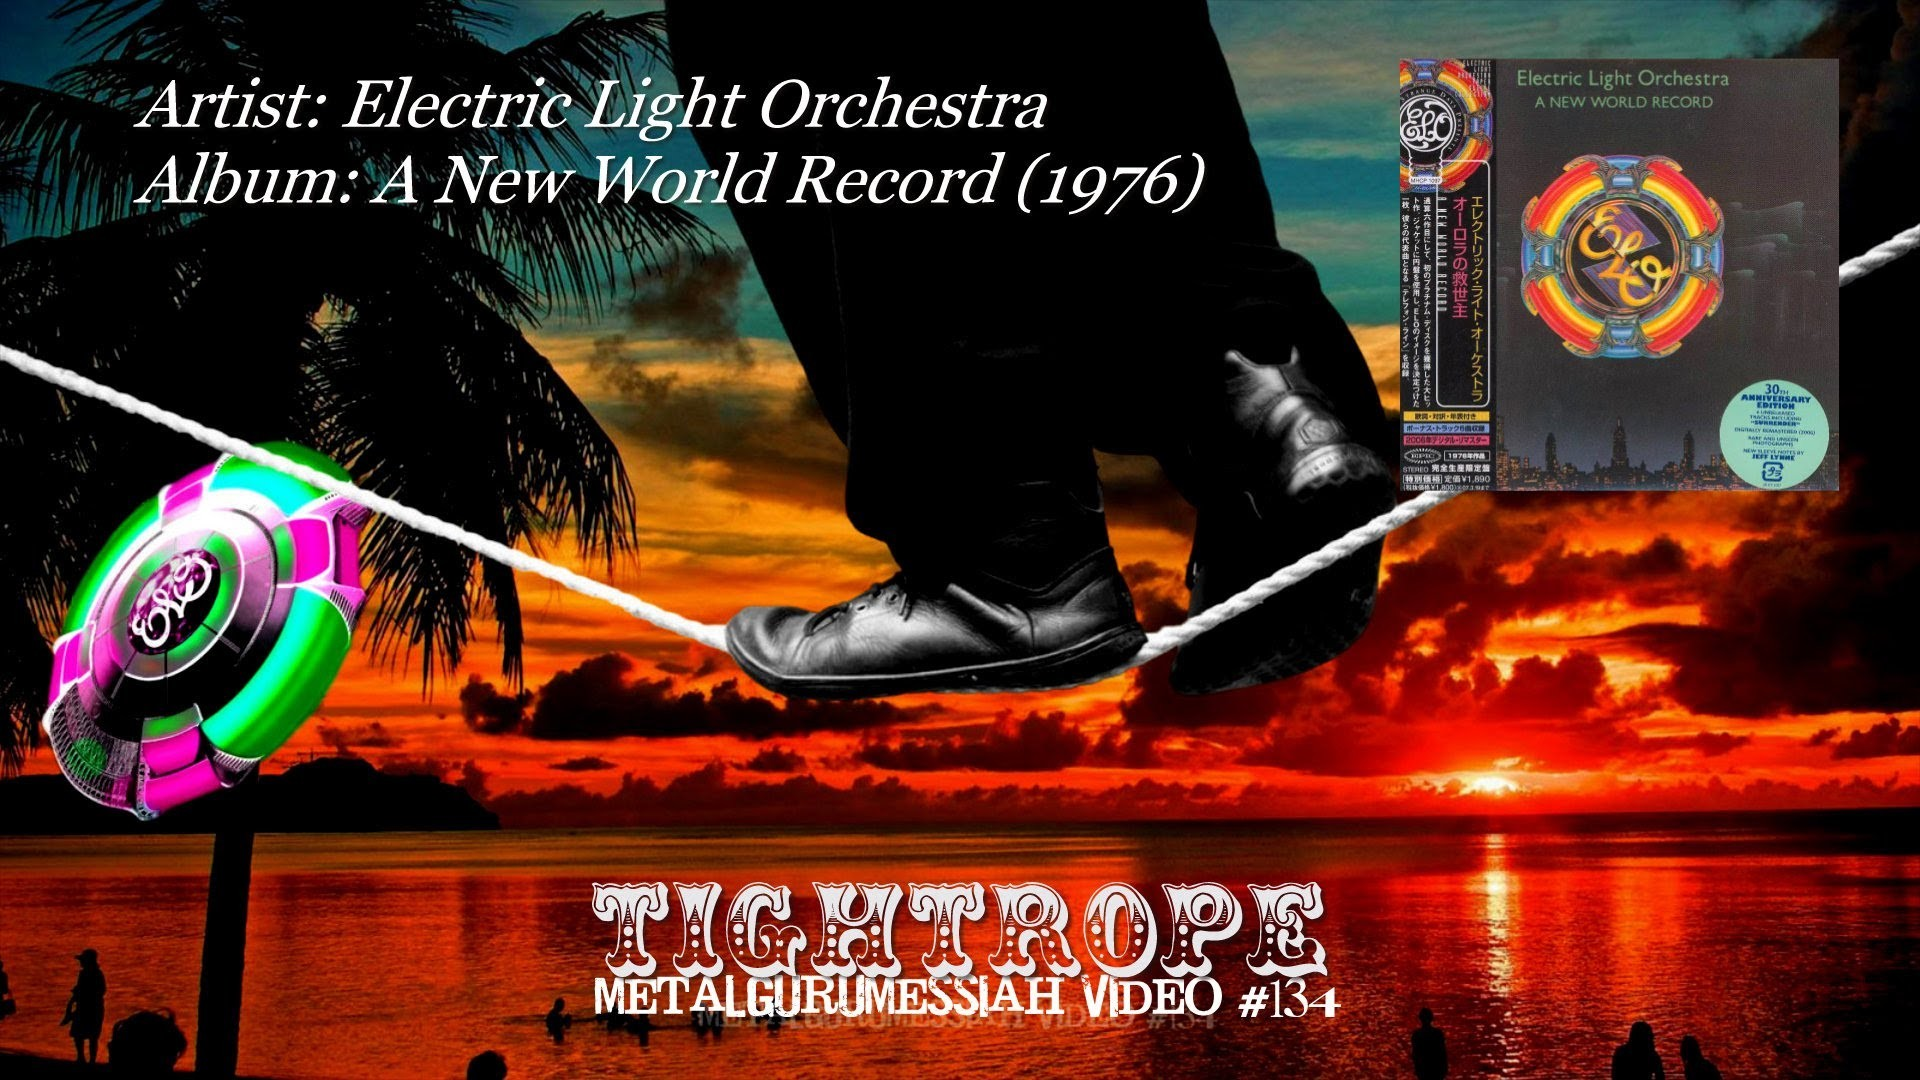 1920x1080 Tightrope - Electric Light Orchestra (1976) Audio Remaster HD Video  ~MetalGuruMessiah~ - YouTube